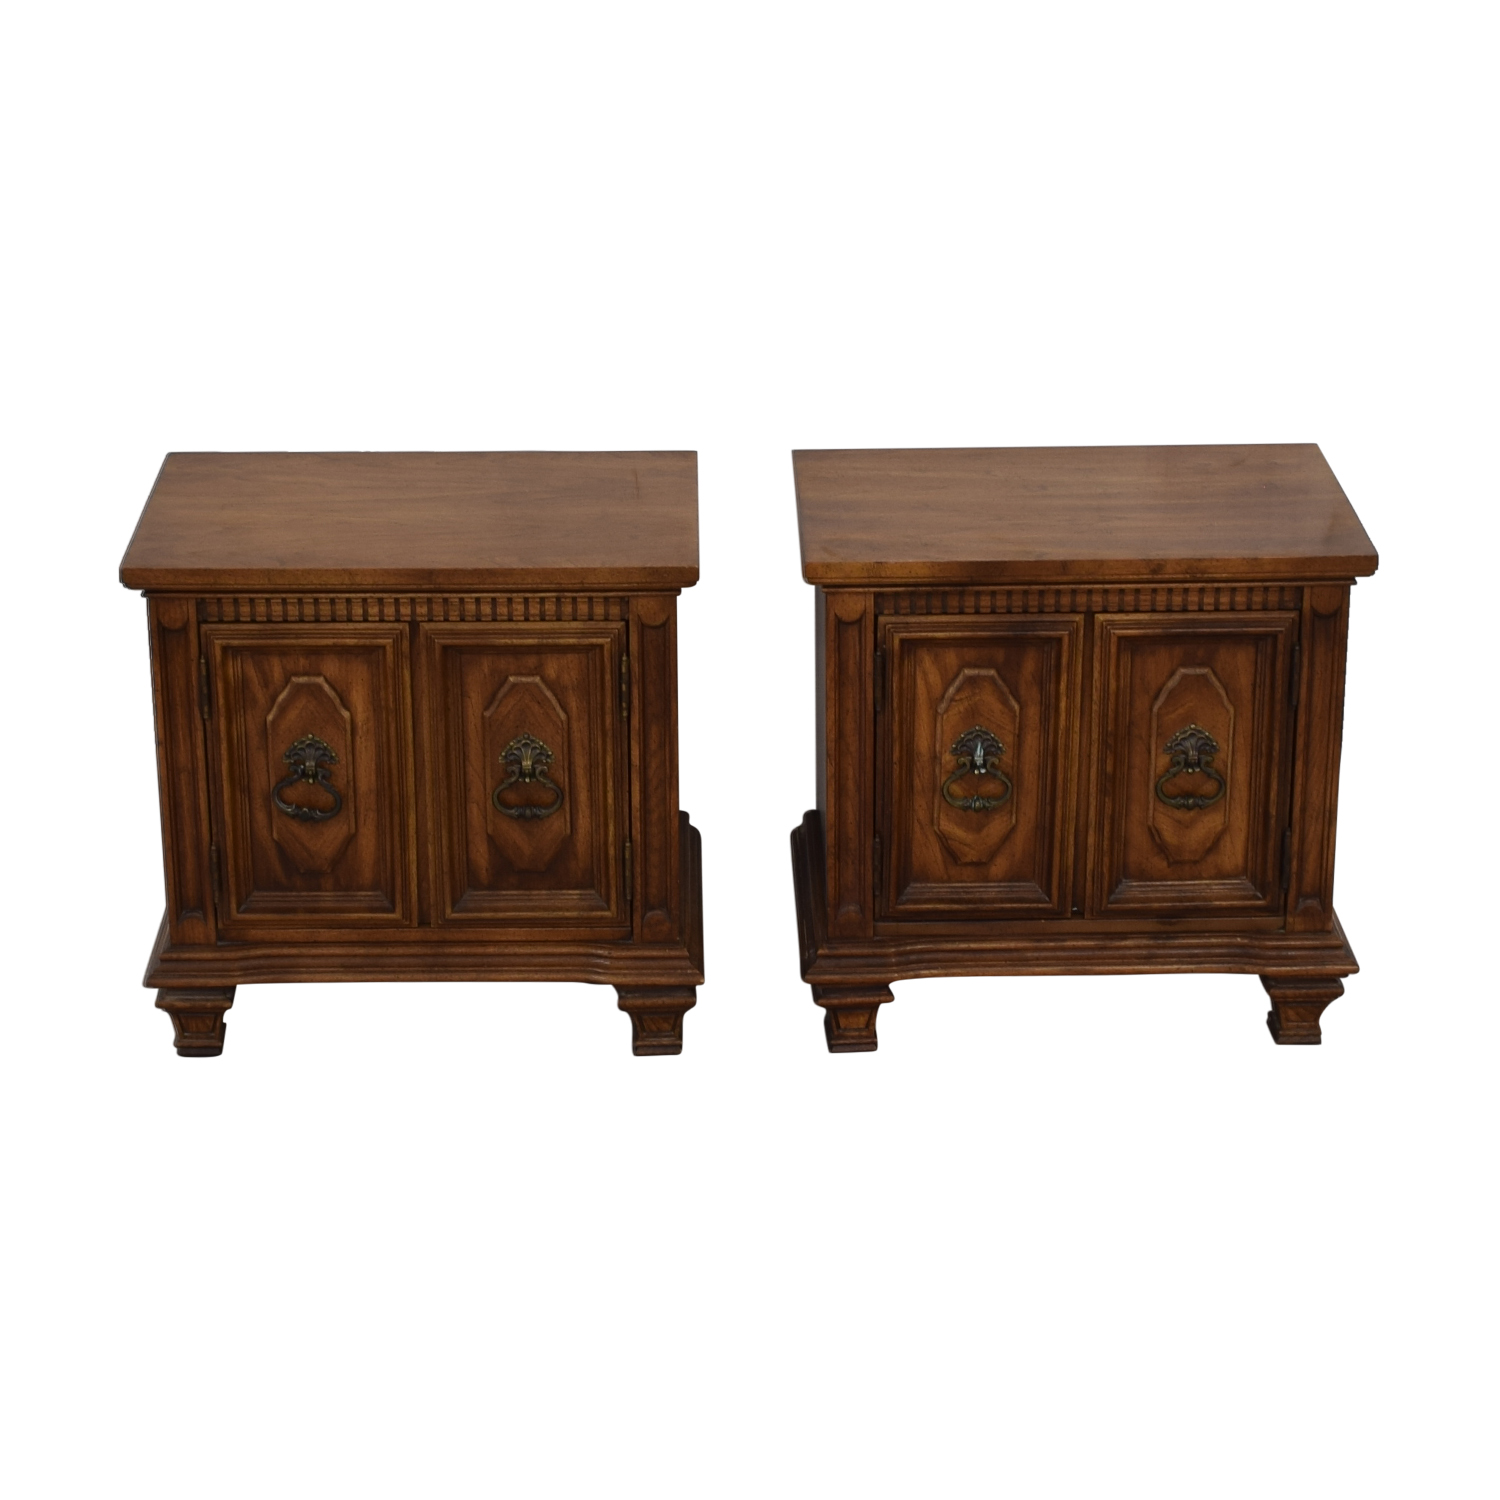 off albe furniture wood storage end tables second hand pulaski accents living room paint ideas with brown couch bedside table lamp shades shed windows wolfe creek amphitheater